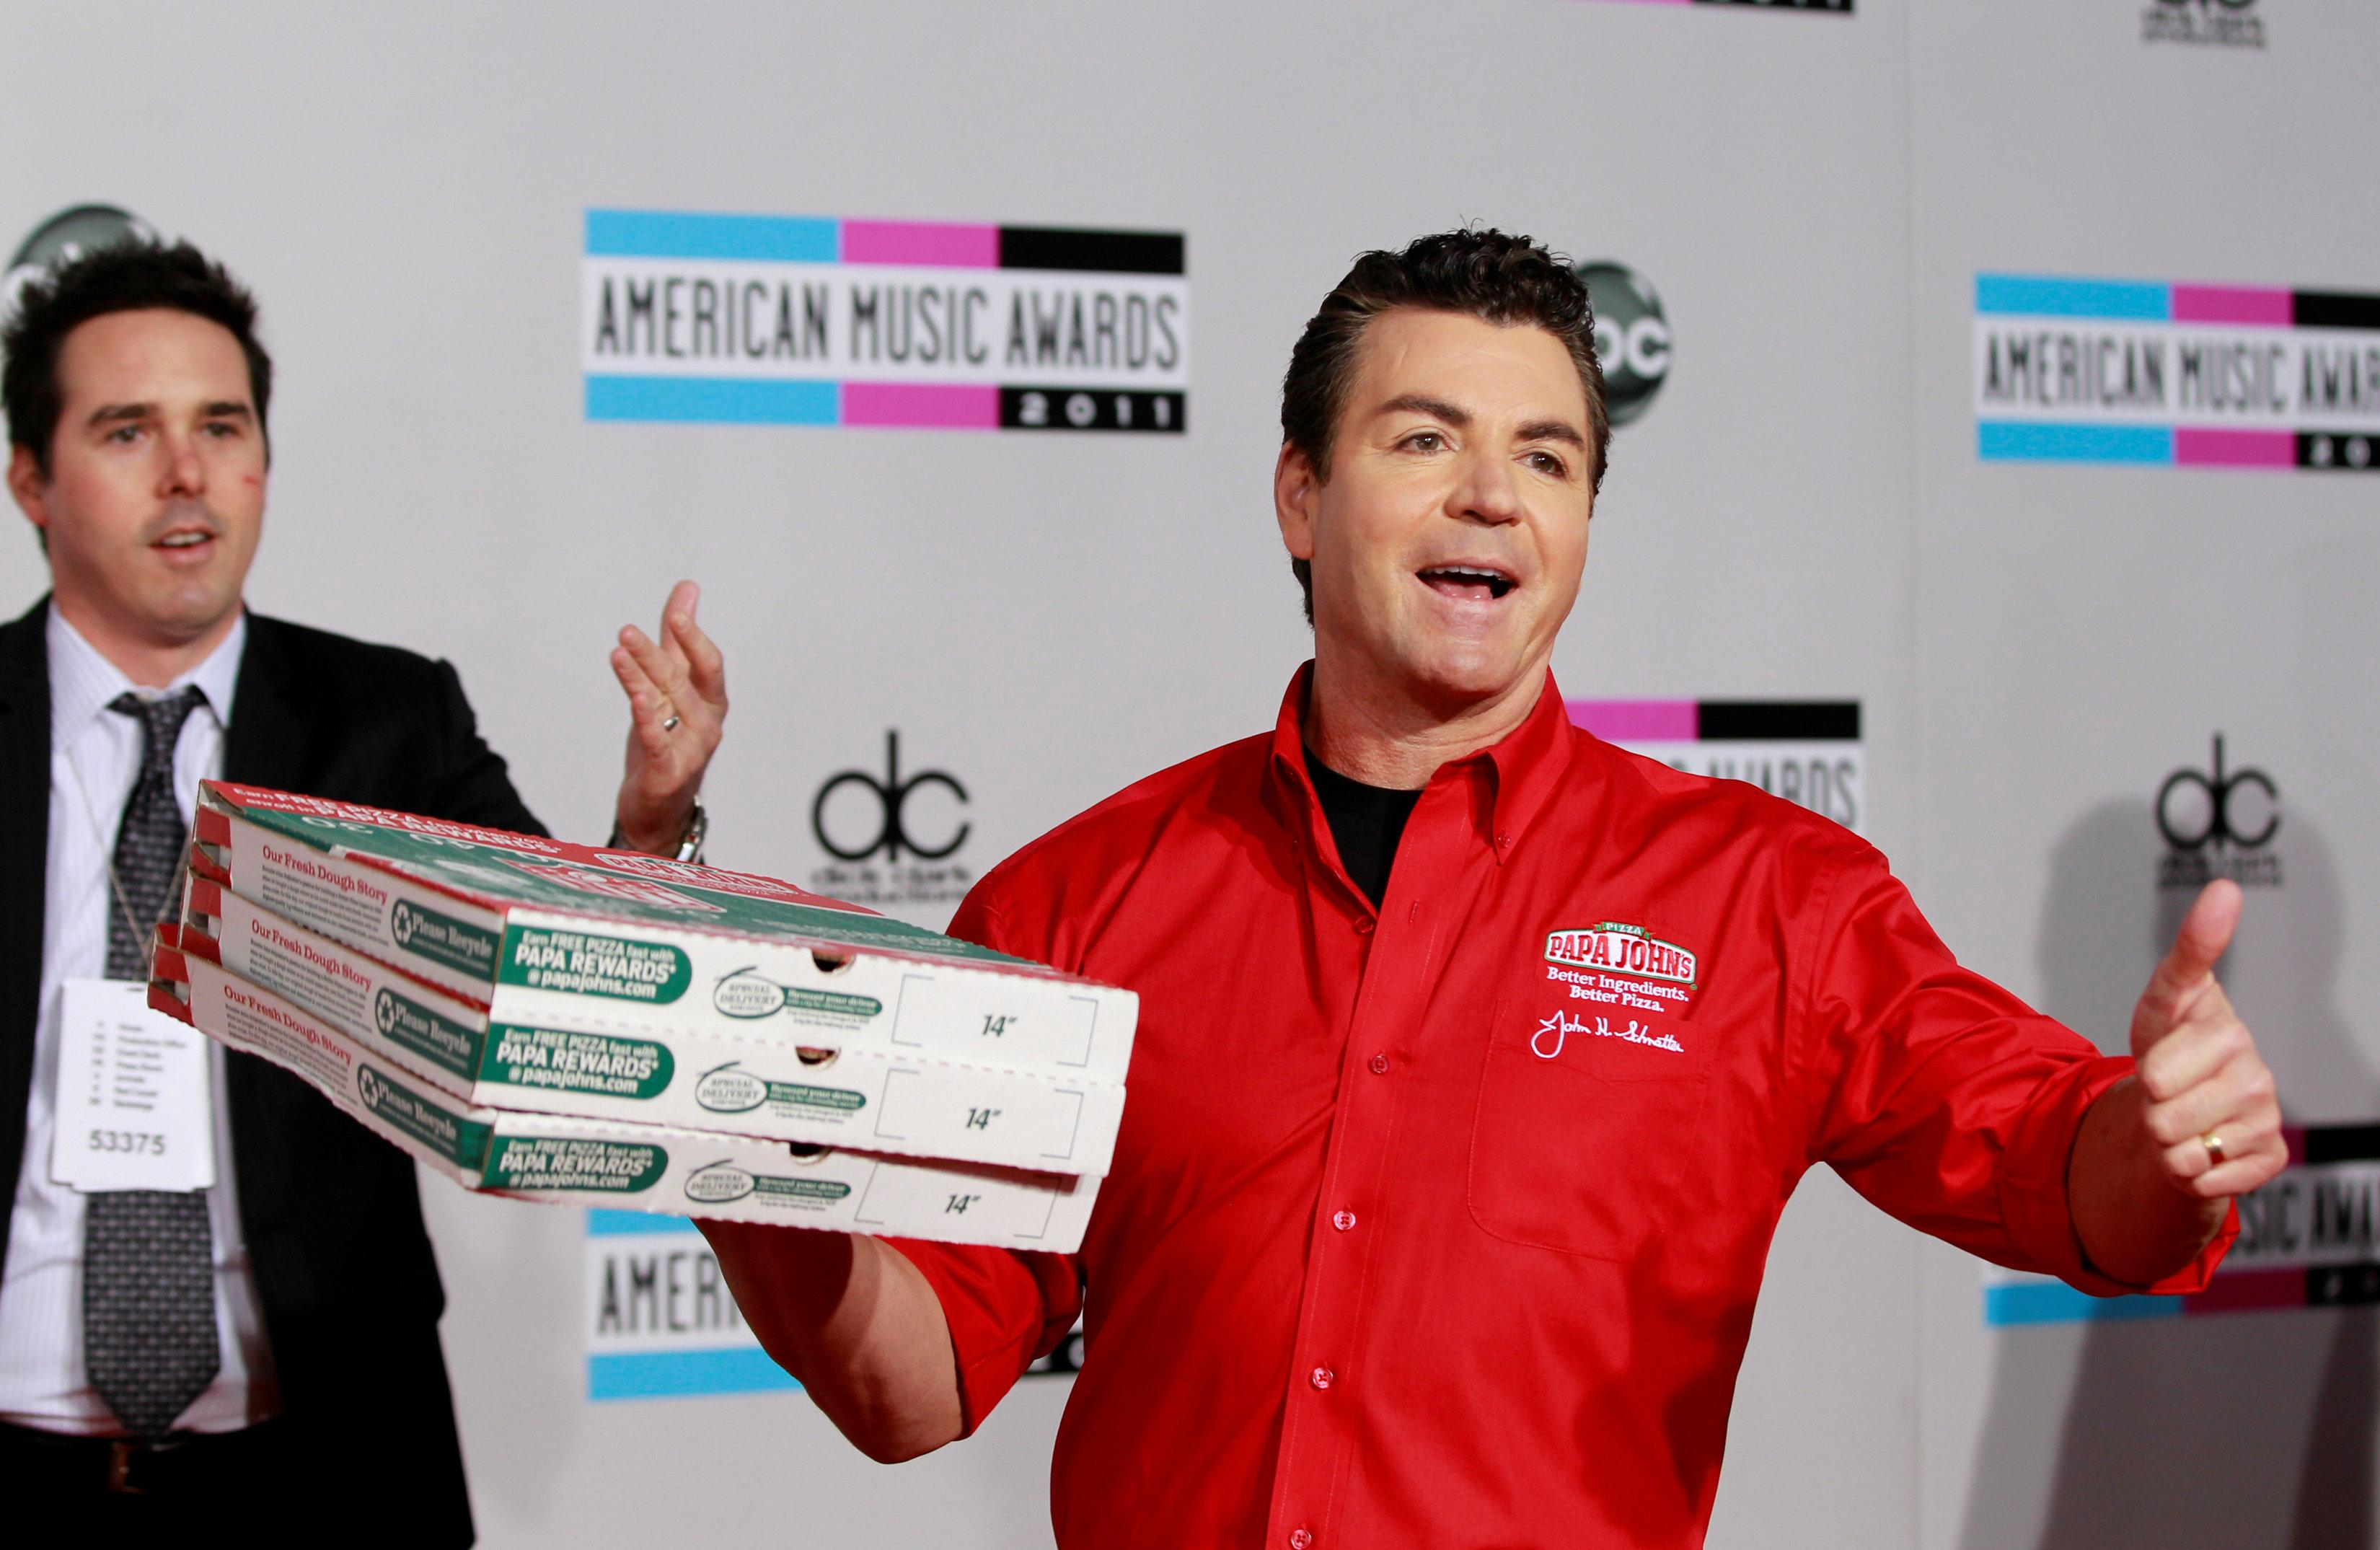 John Schnatter (R), founder and chief executive of Papa John's Pizza, arrives at the 2011 American Music Awards in Los Angeles November 20, 2011. Danny Moloshok